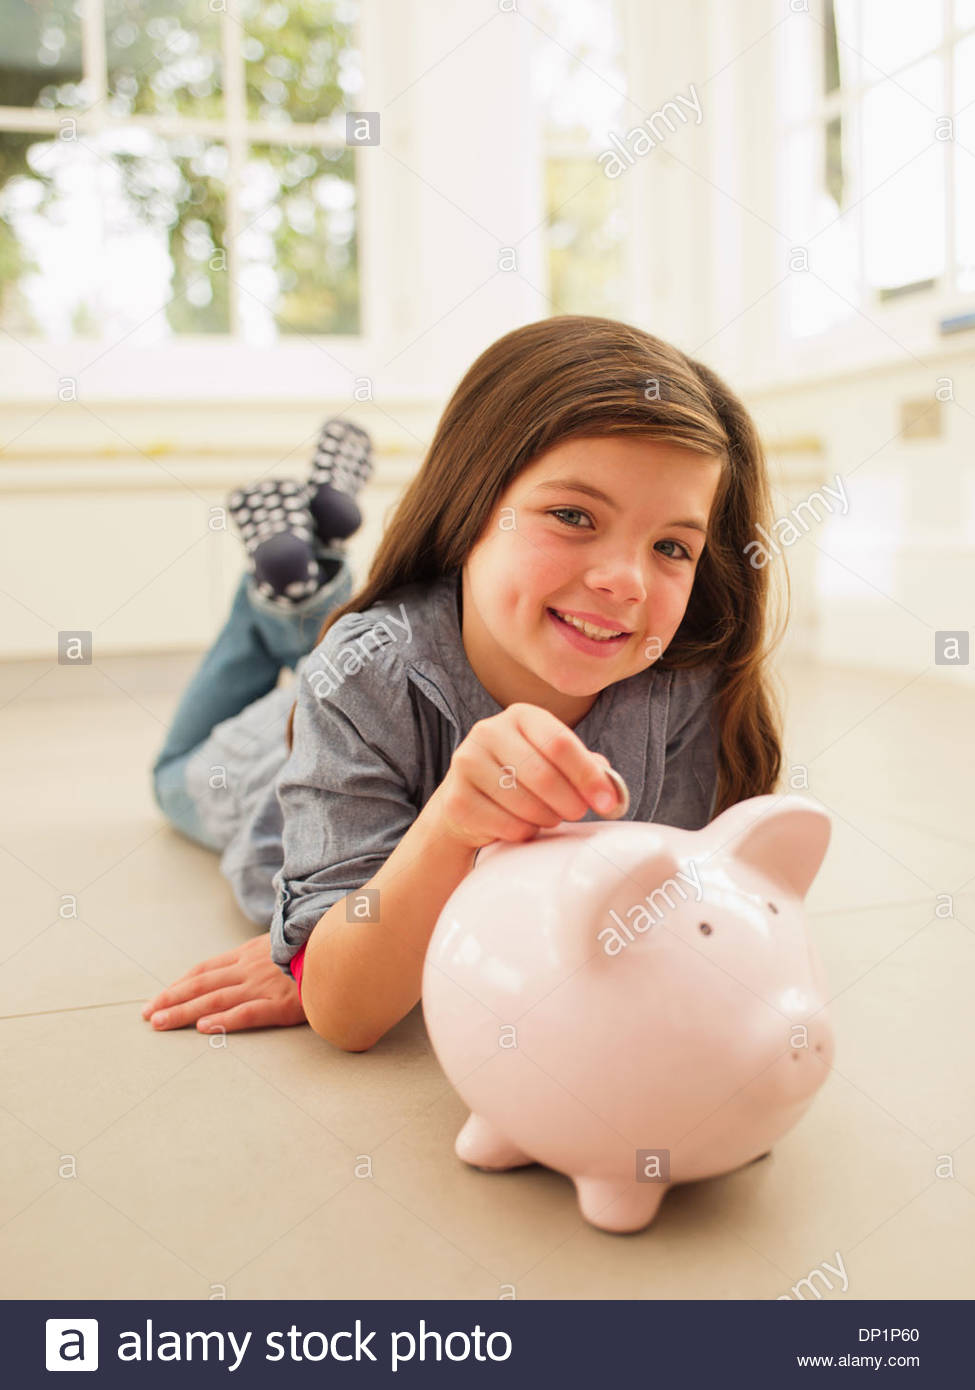 Girl putting coin into piggy bank - Stock Image